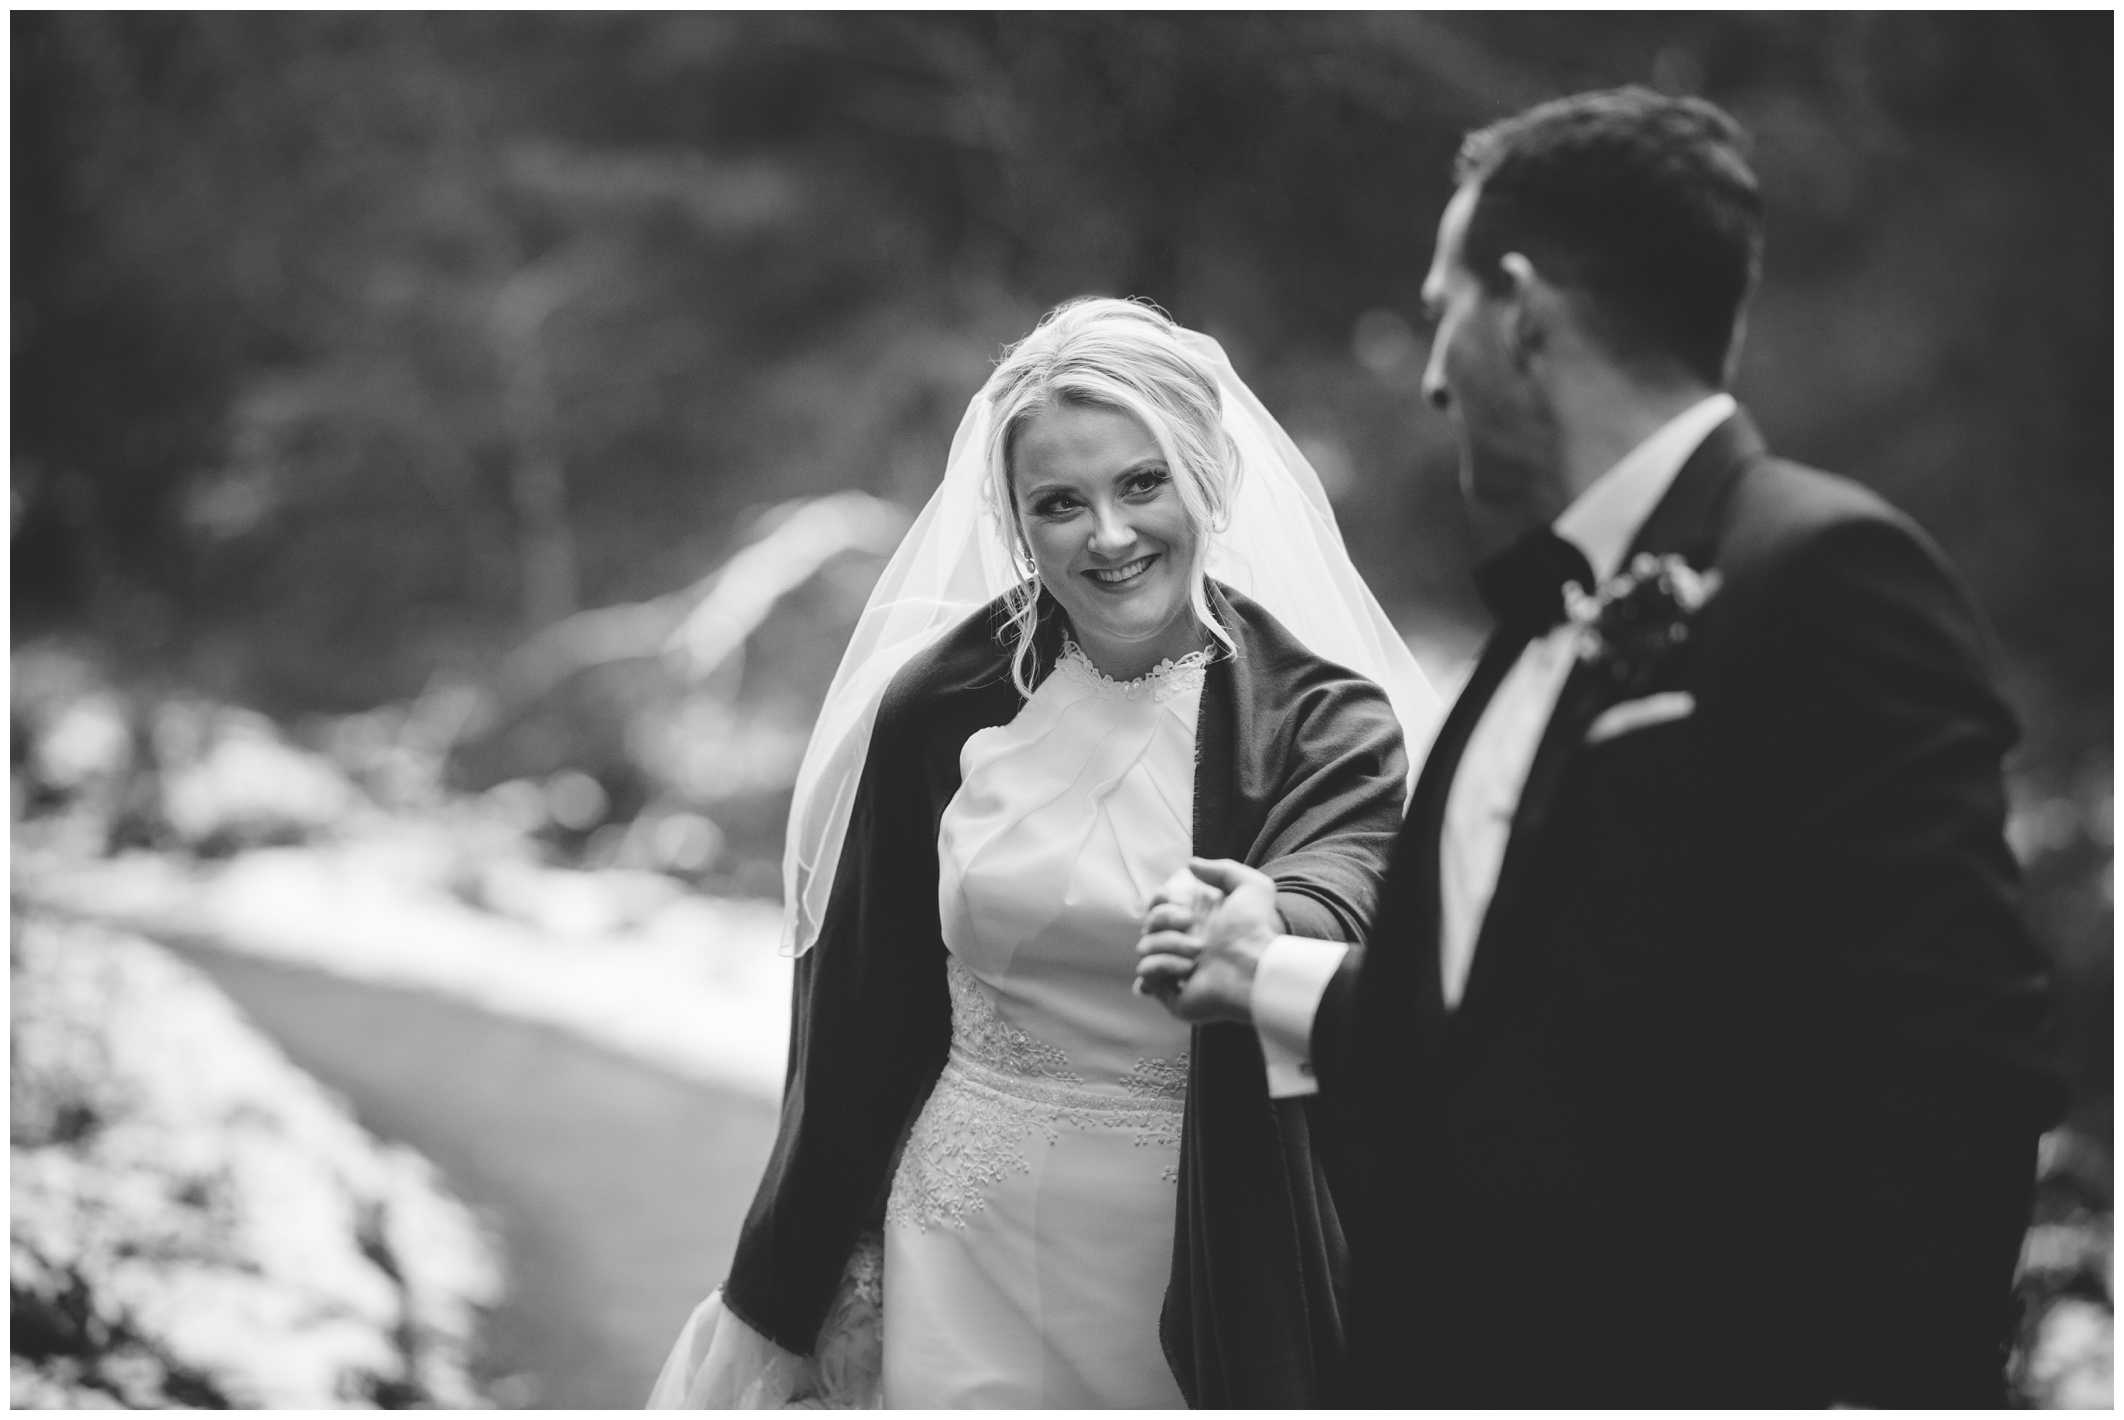 silver_tassie_wedding_jude_browne_photography_0061.jpg